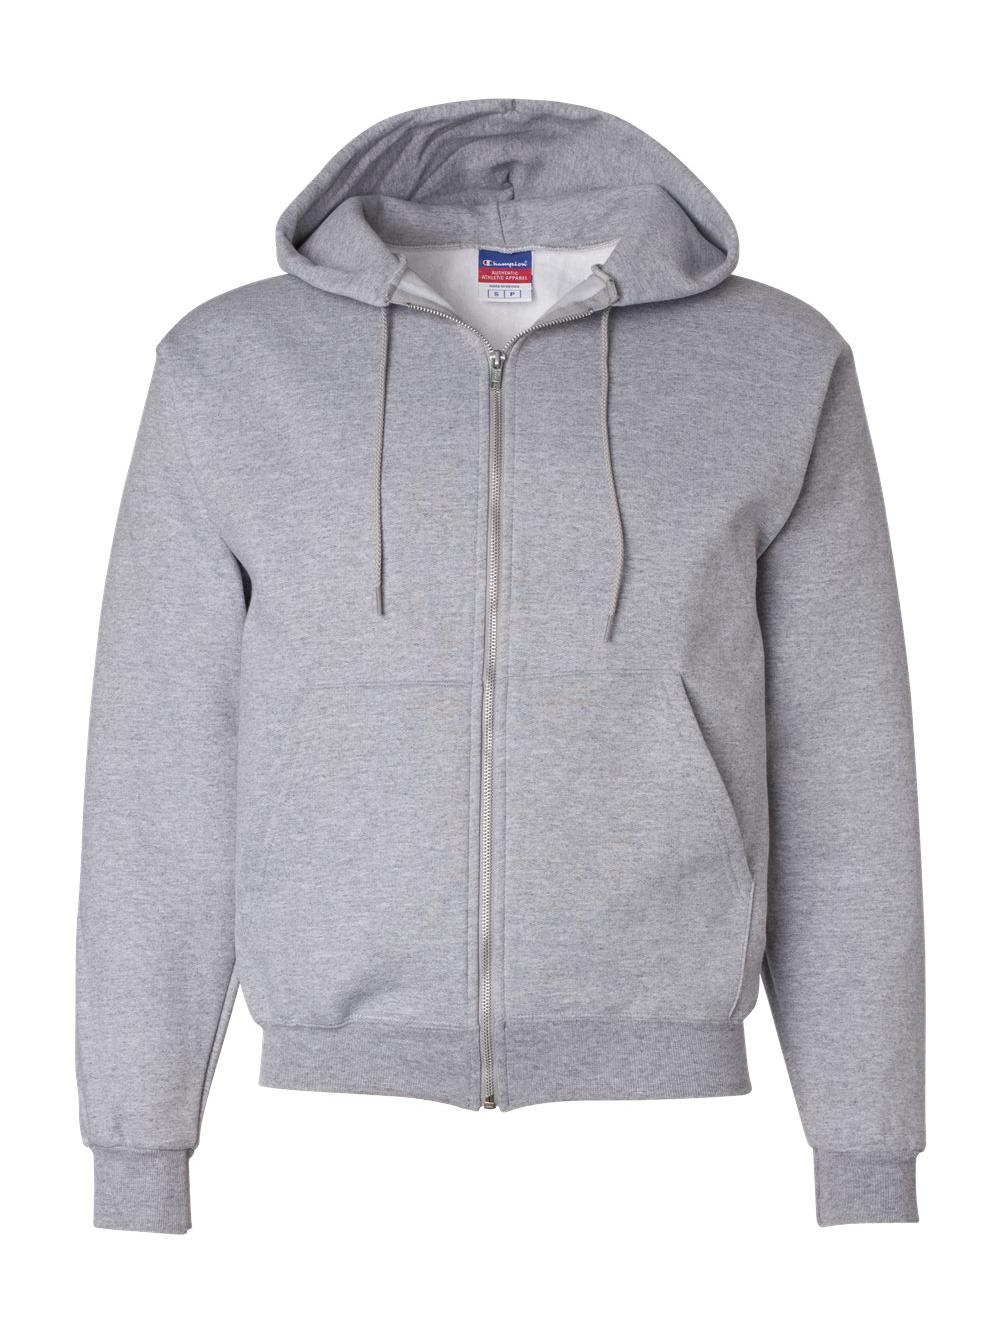 40d86512cef7 2 Champion Double Dry Action Fleece Full Zip Hoodies S800 M Light ...